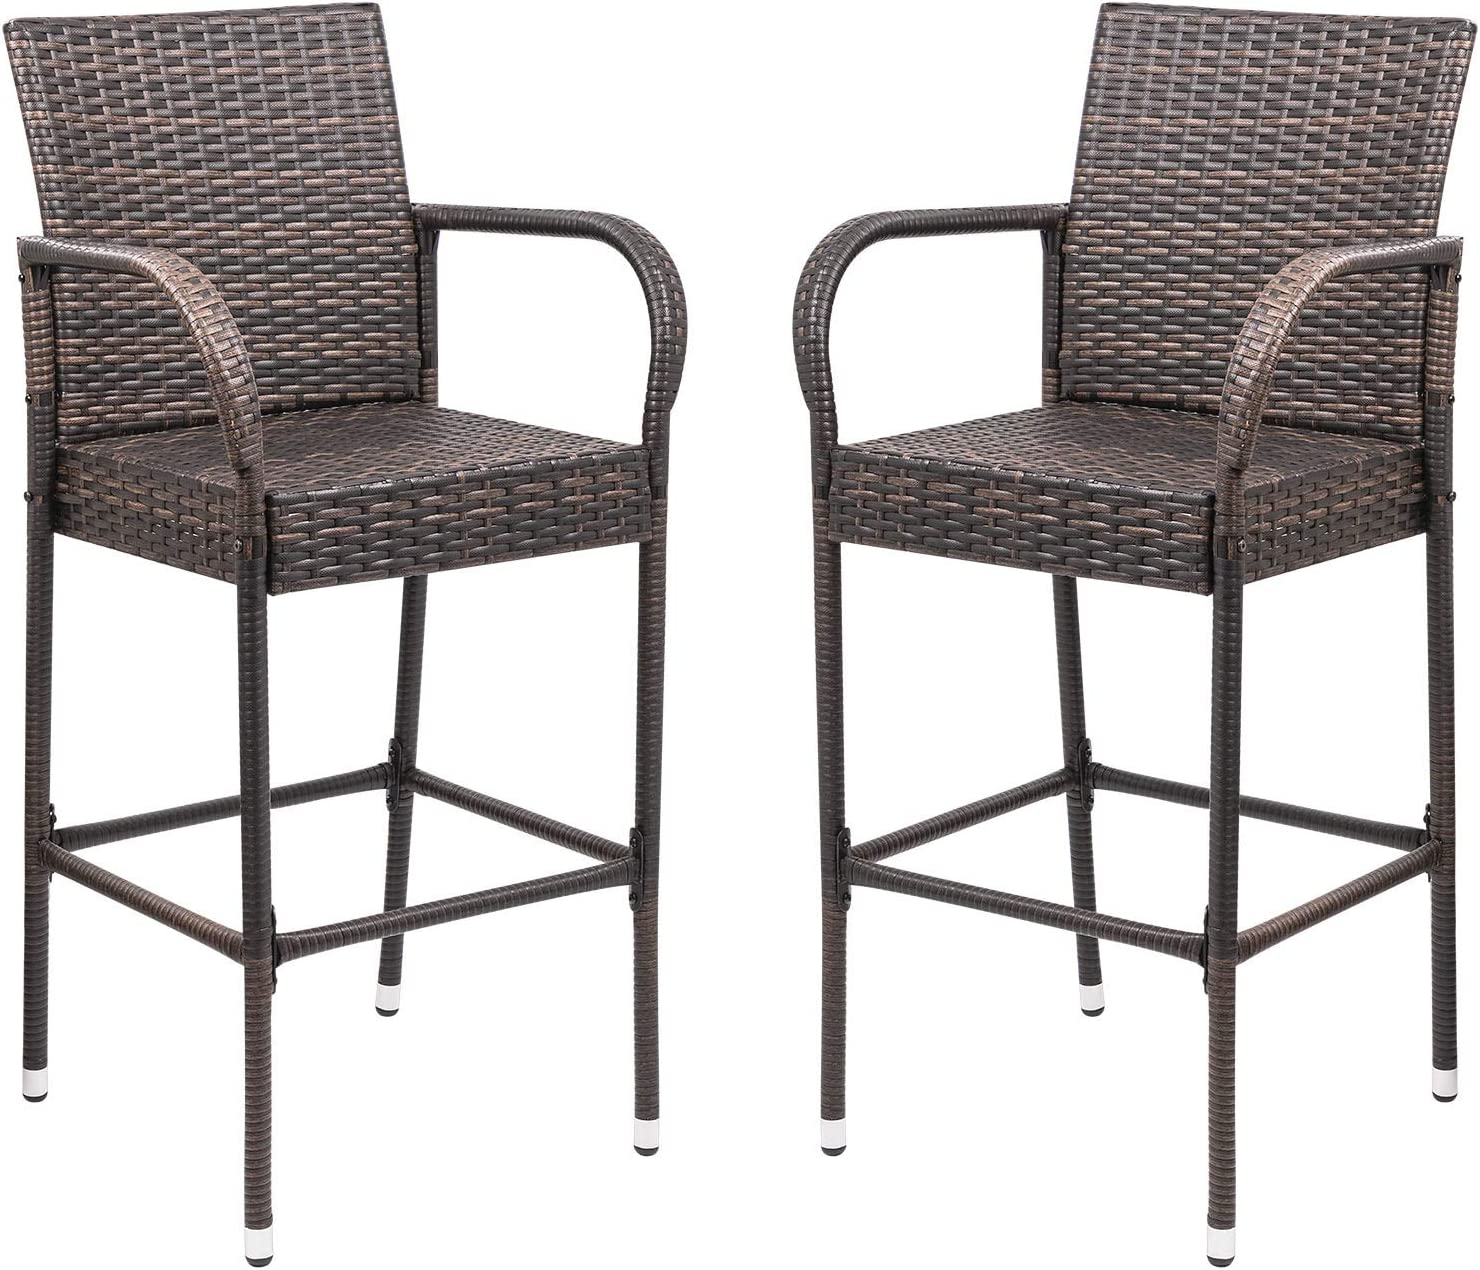 Top Image Patio Bar Chair